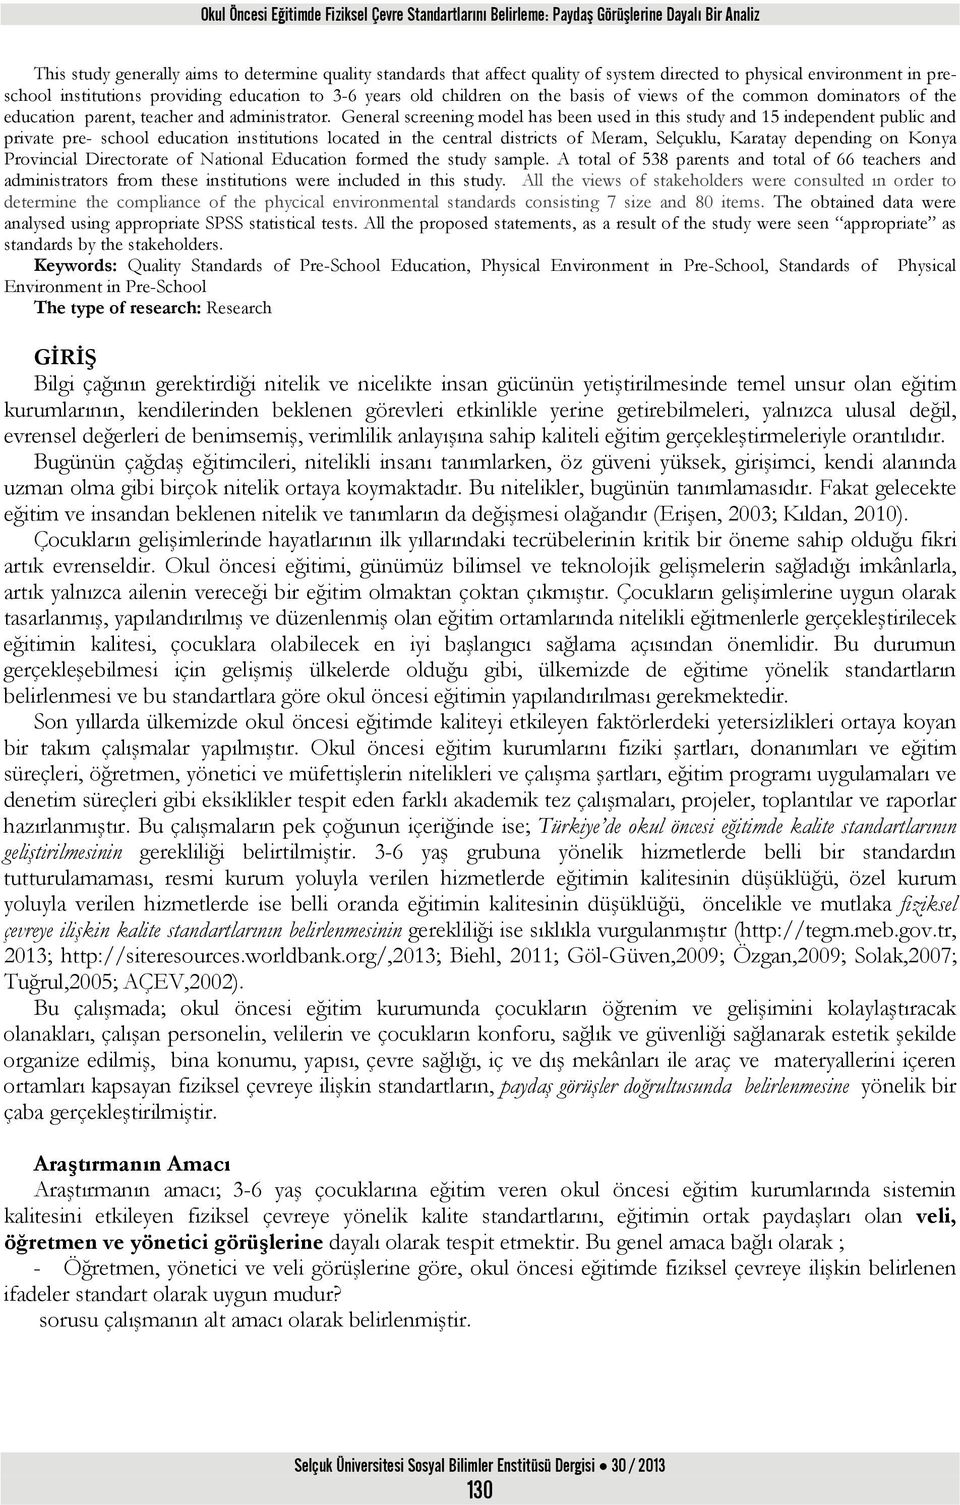 General screening model has been used in this study and 15 independent public and private pre- school education institutions located in the central districts of Meram, Selçuklu, Karatay depending on